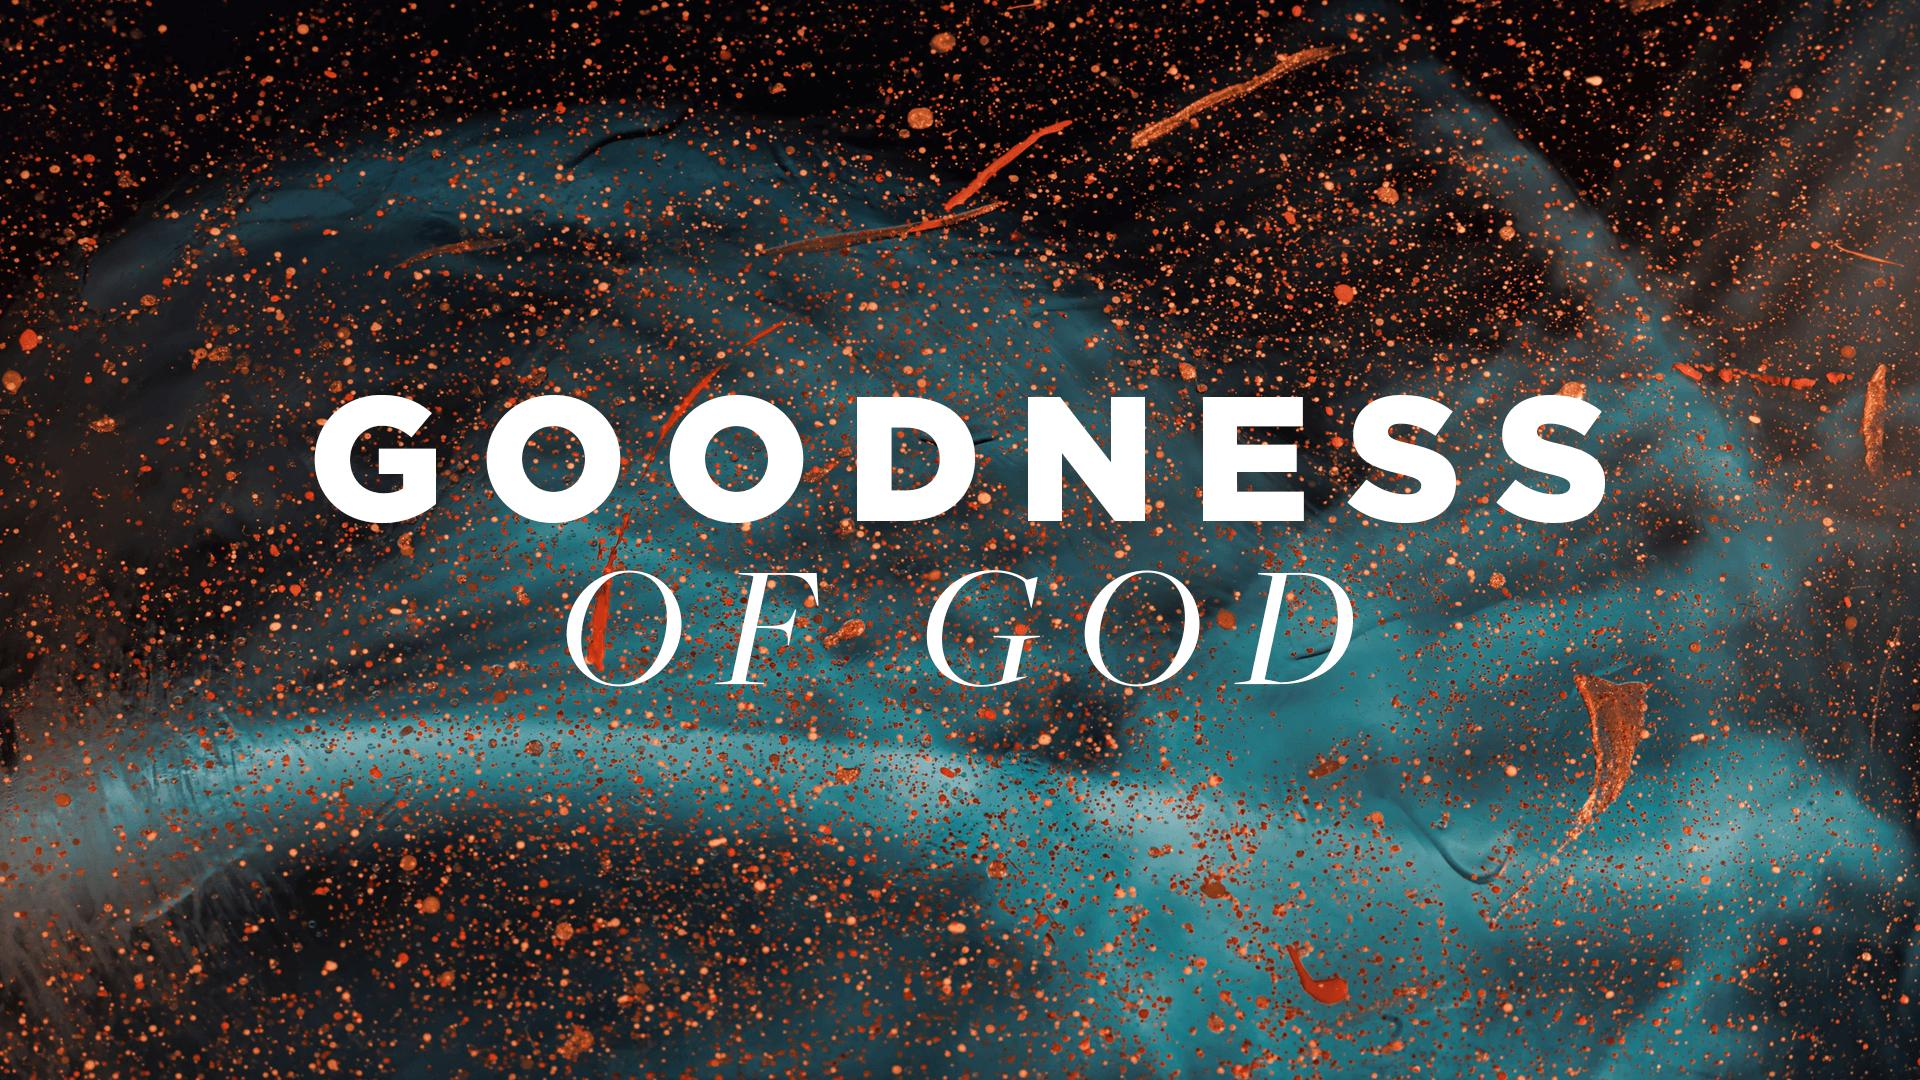 Bekijk de preek van Moses Mugalasi over The Goodness of God